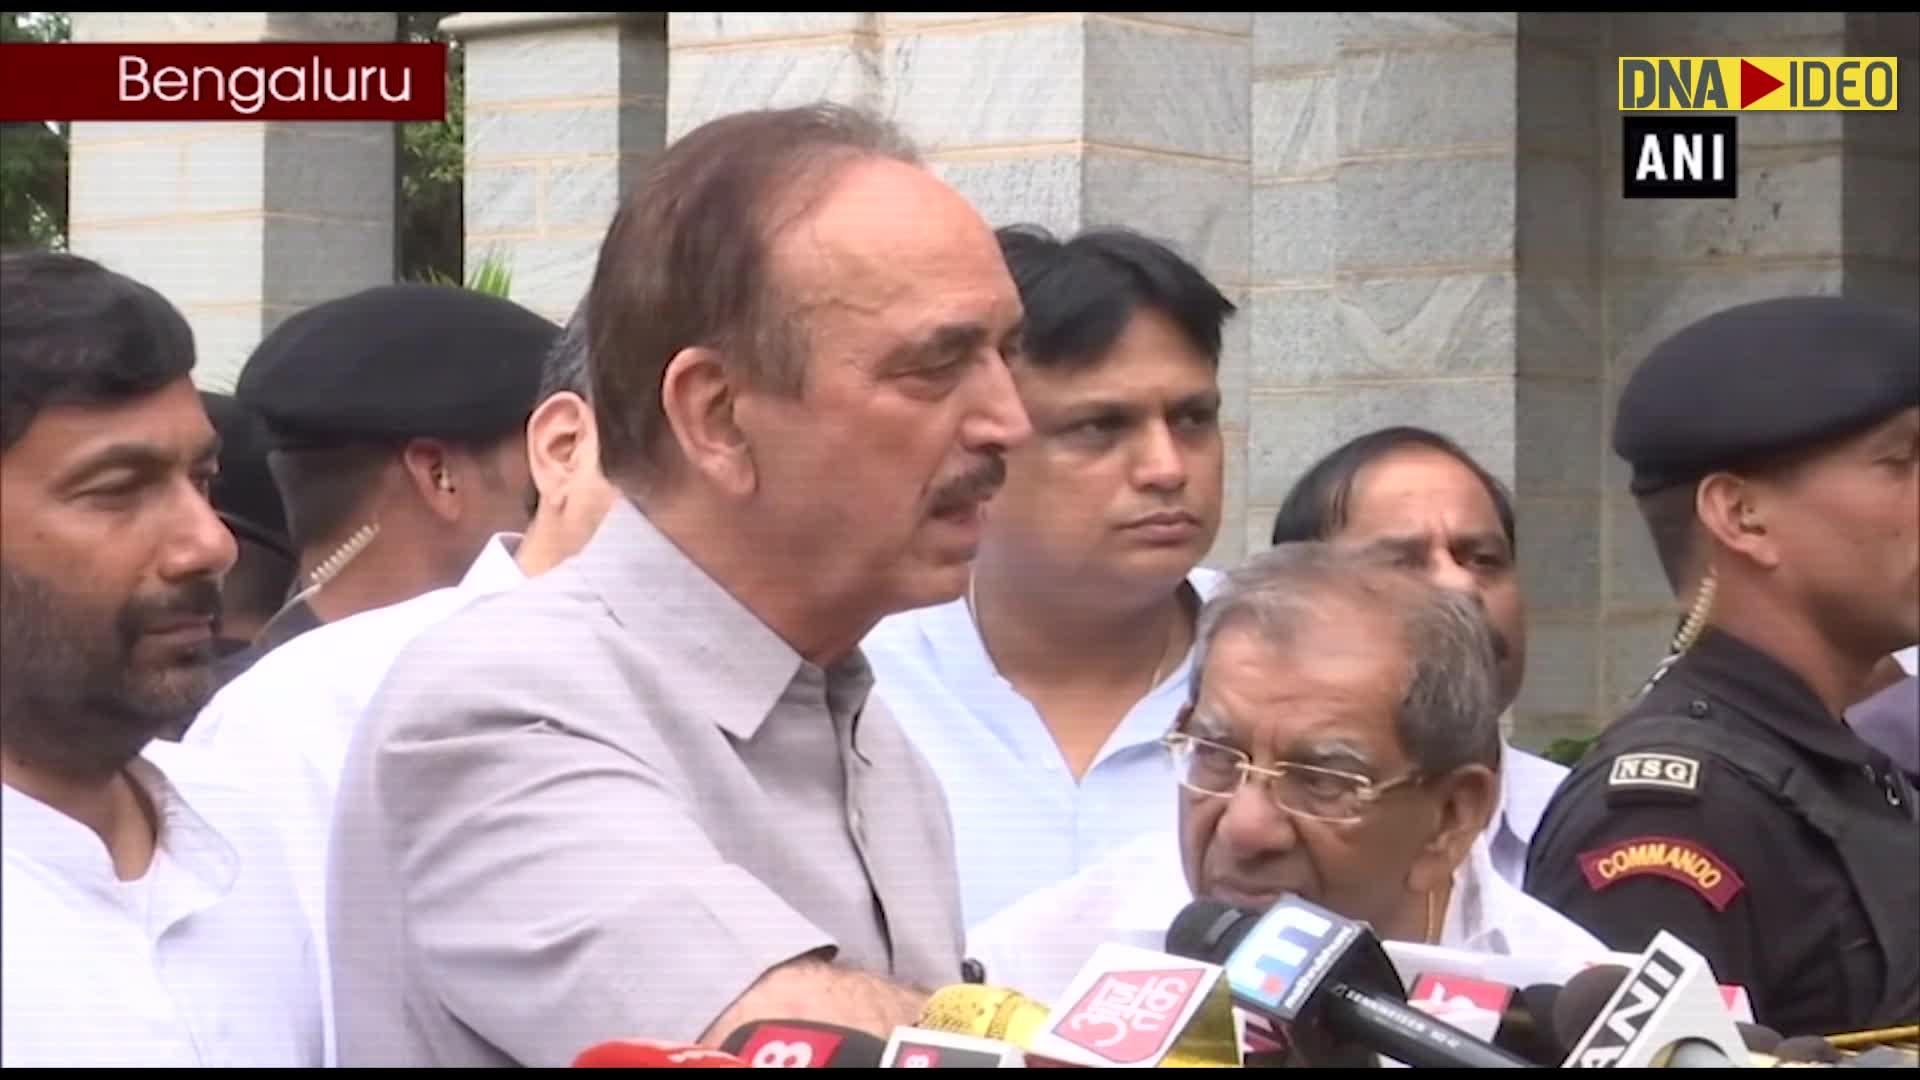 K'taka political crisis:  BJP came to power to finish democracy, says Ghulam Nabi Azad | Latest News & Updates at DNAIndia.com